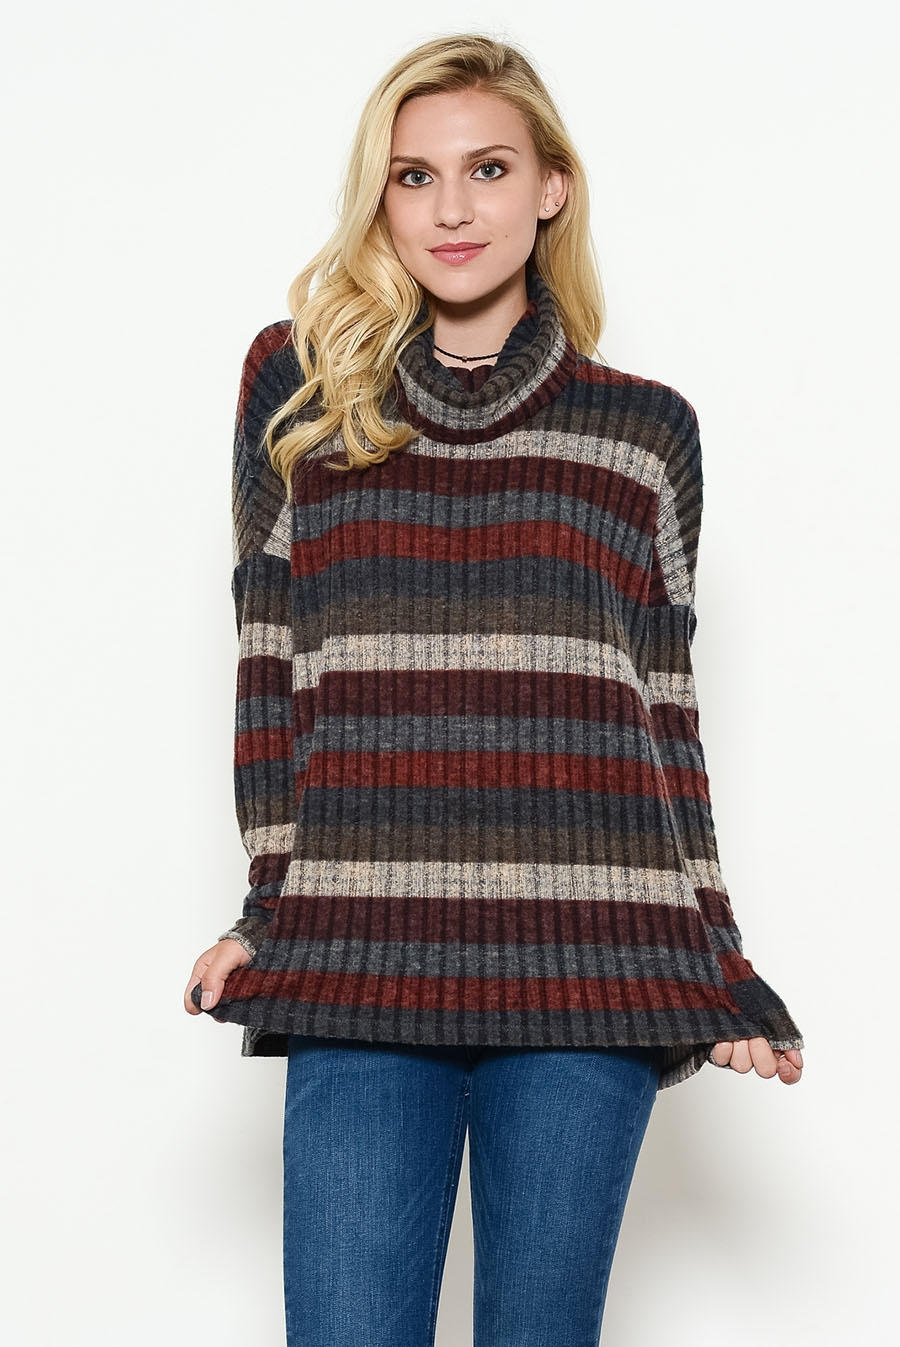 RIB STRIPE MOCK NECK TOP - orangeshine.com